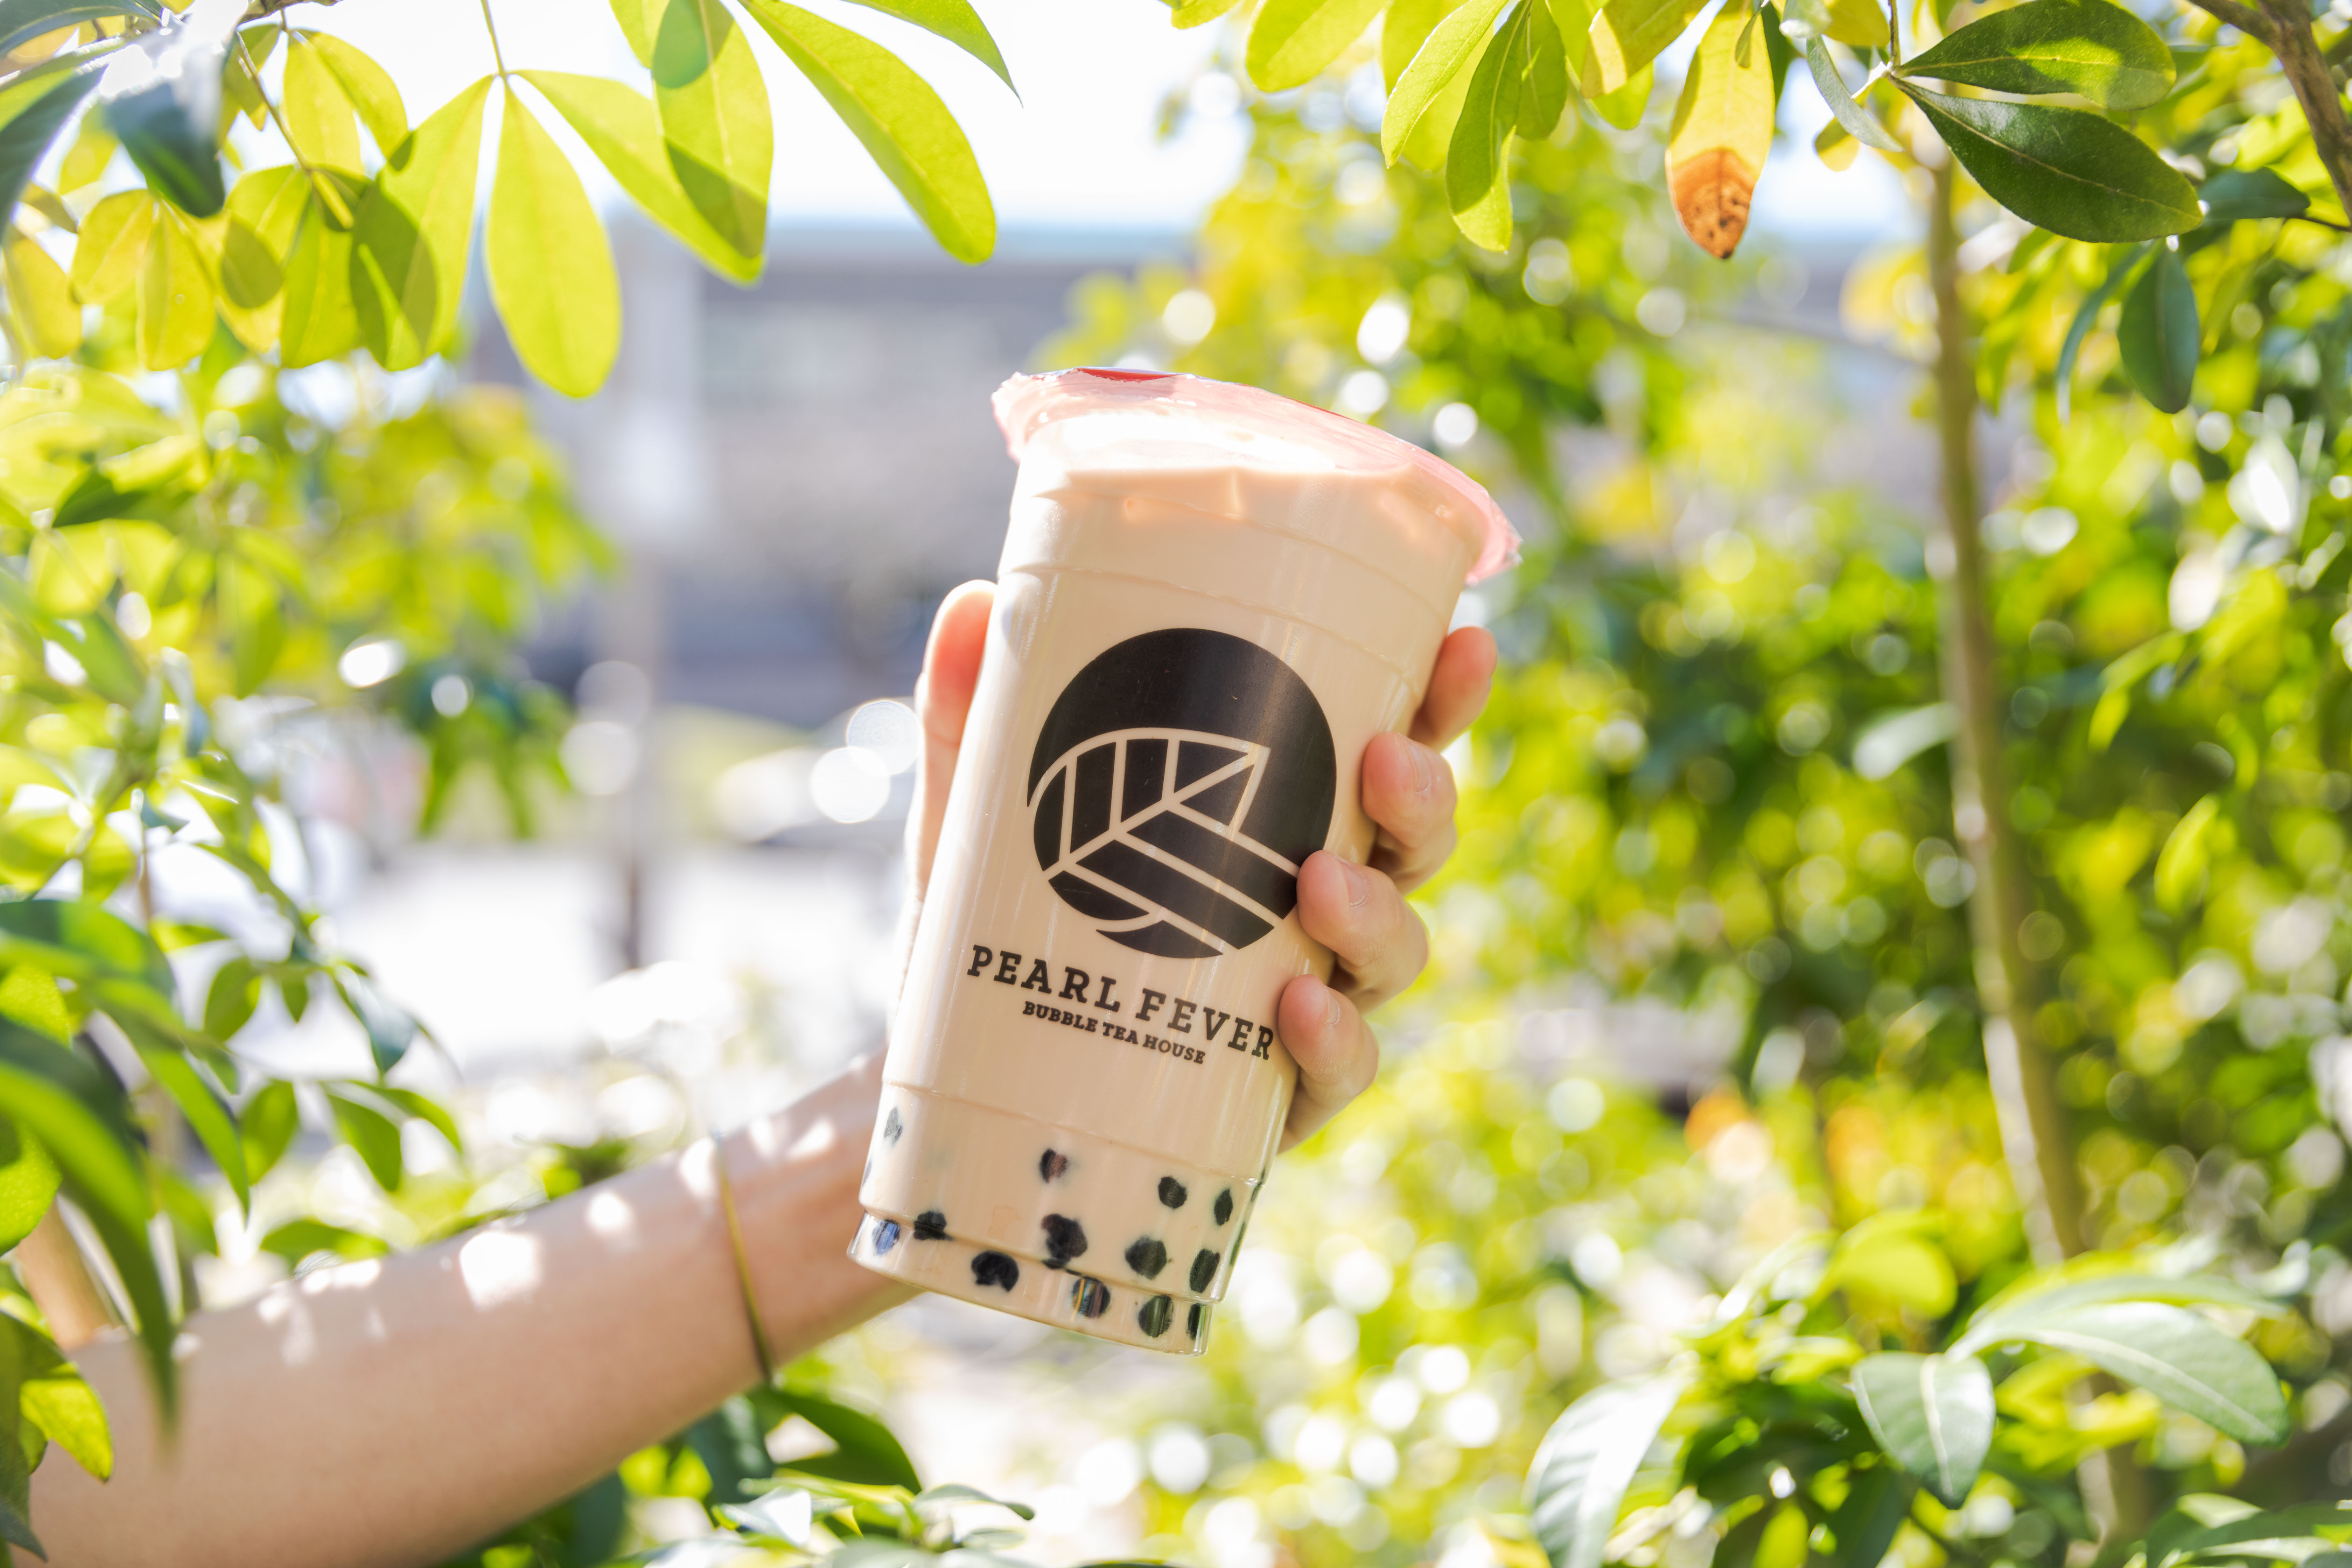 Pearl fever milk tea